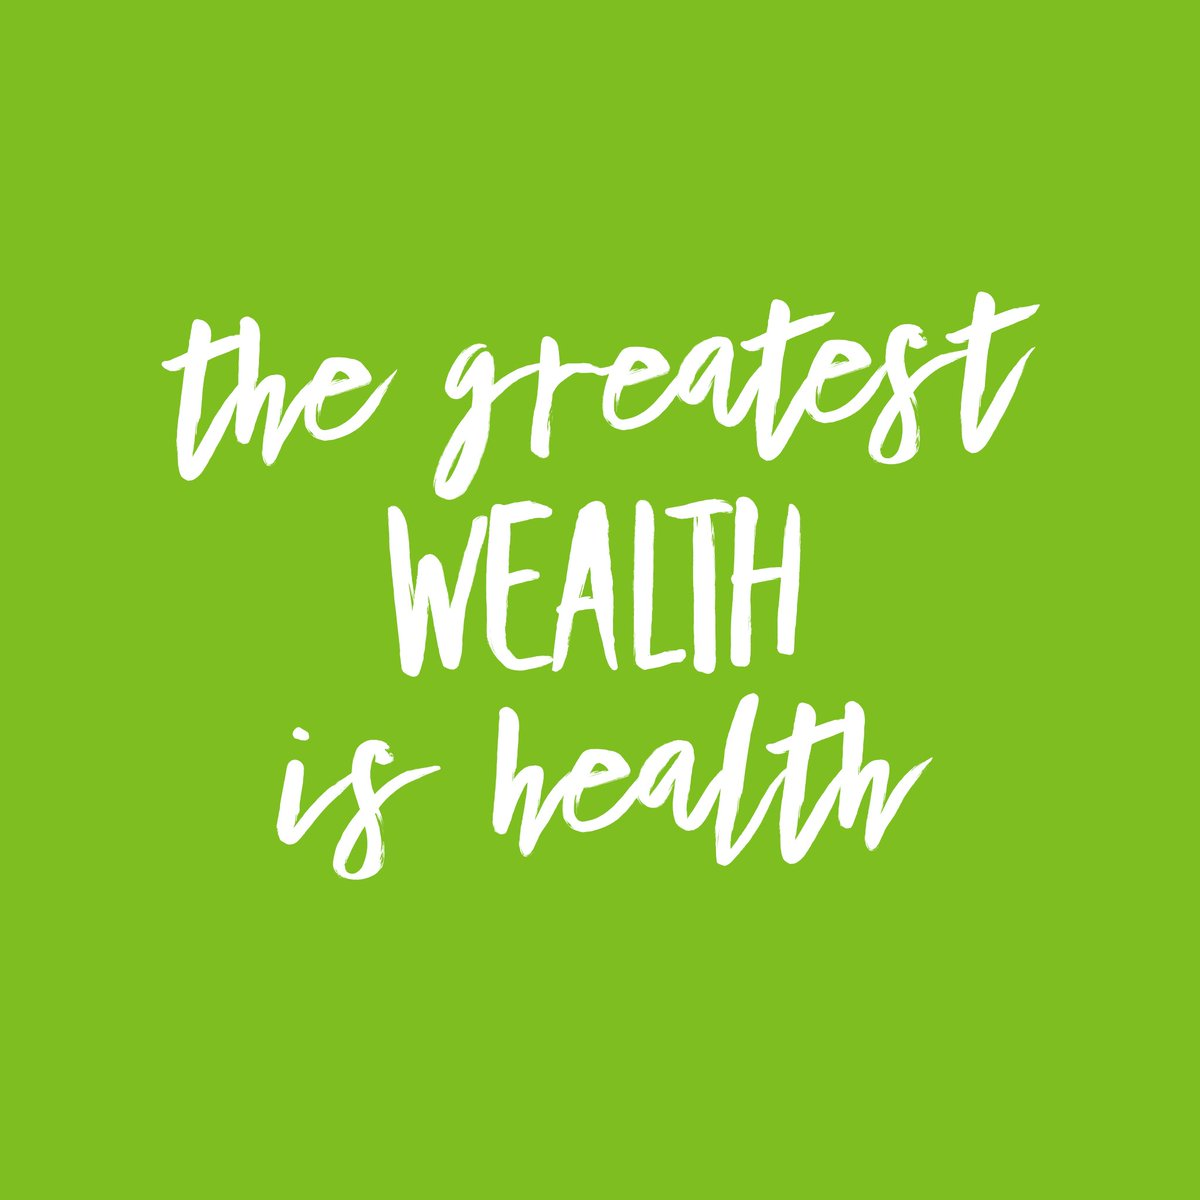 If you have your health you can achieve anything#selfexpression #selfcarethread #selfempowerment #selfservice #selfacceptance #selfreflection #selfdiscovery #confidencecoach #confidenceiskey #confidenceboost #seemorehair #herbalglo #feelslikeafacelift #organicbeautyproducts pic.twitter.com/3SYxTrtBUX